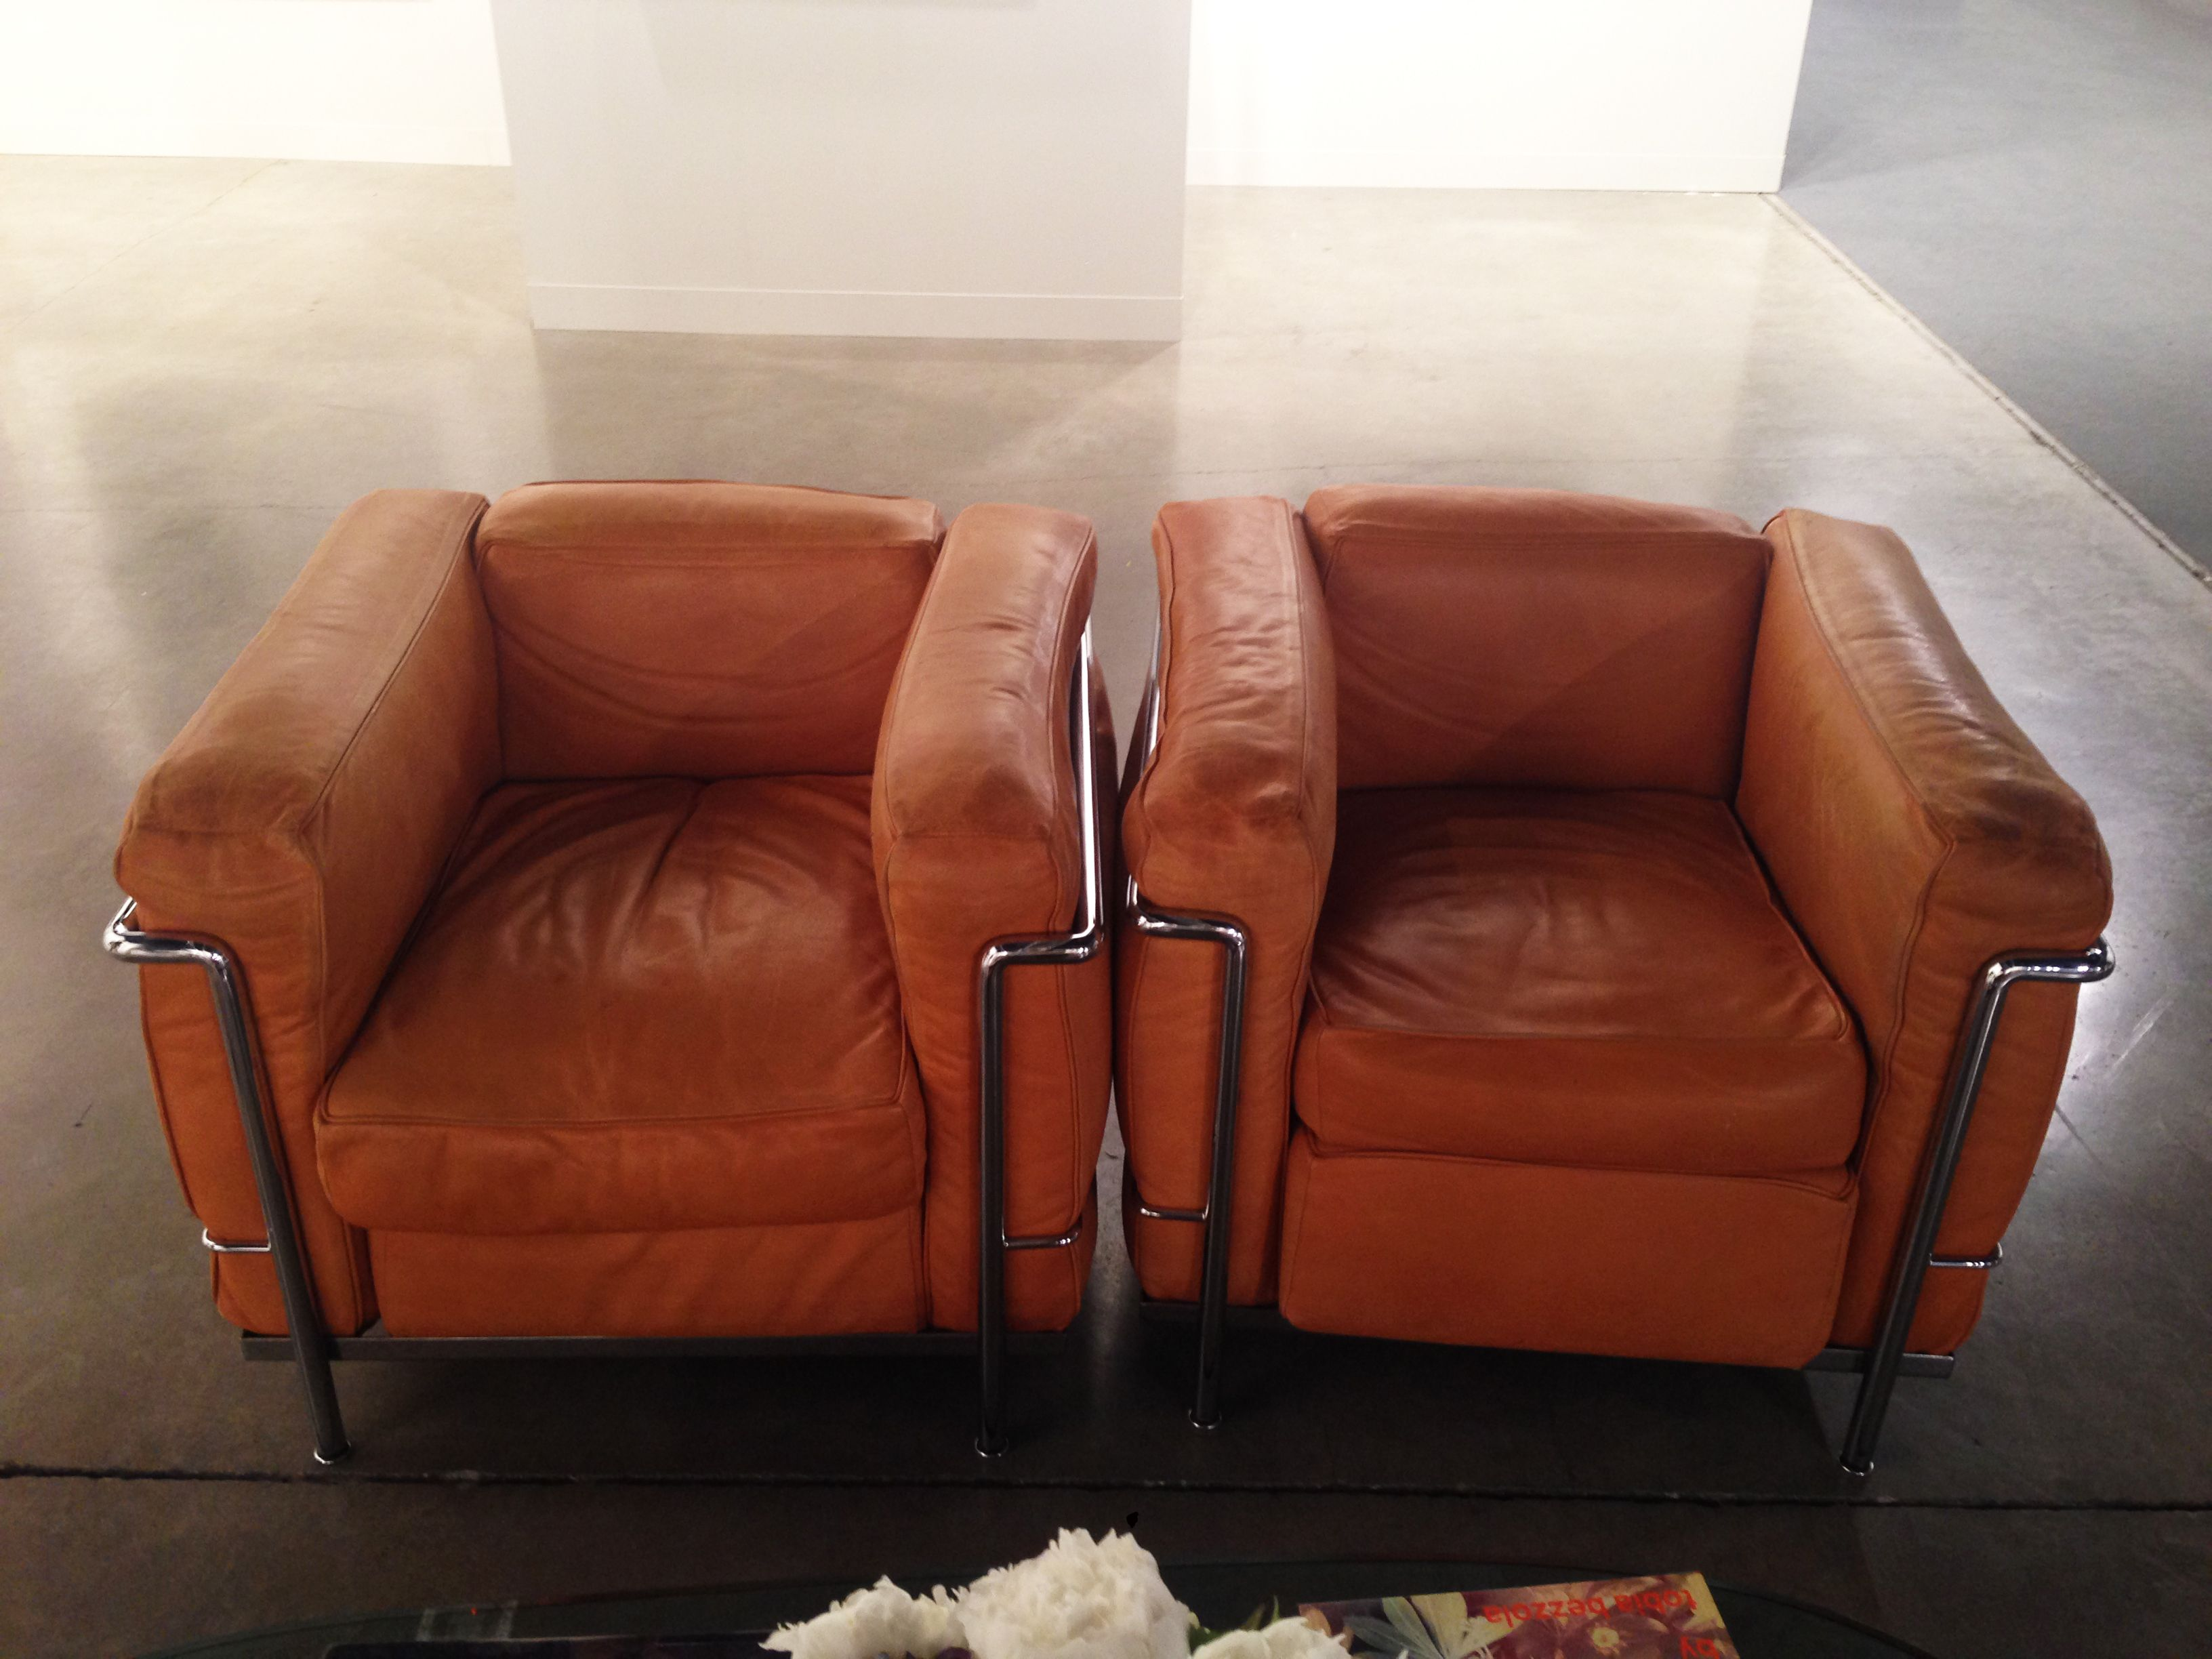 Le corbusier chair vintage - Beautiful Pair Of Original Le Corbusier Chairs